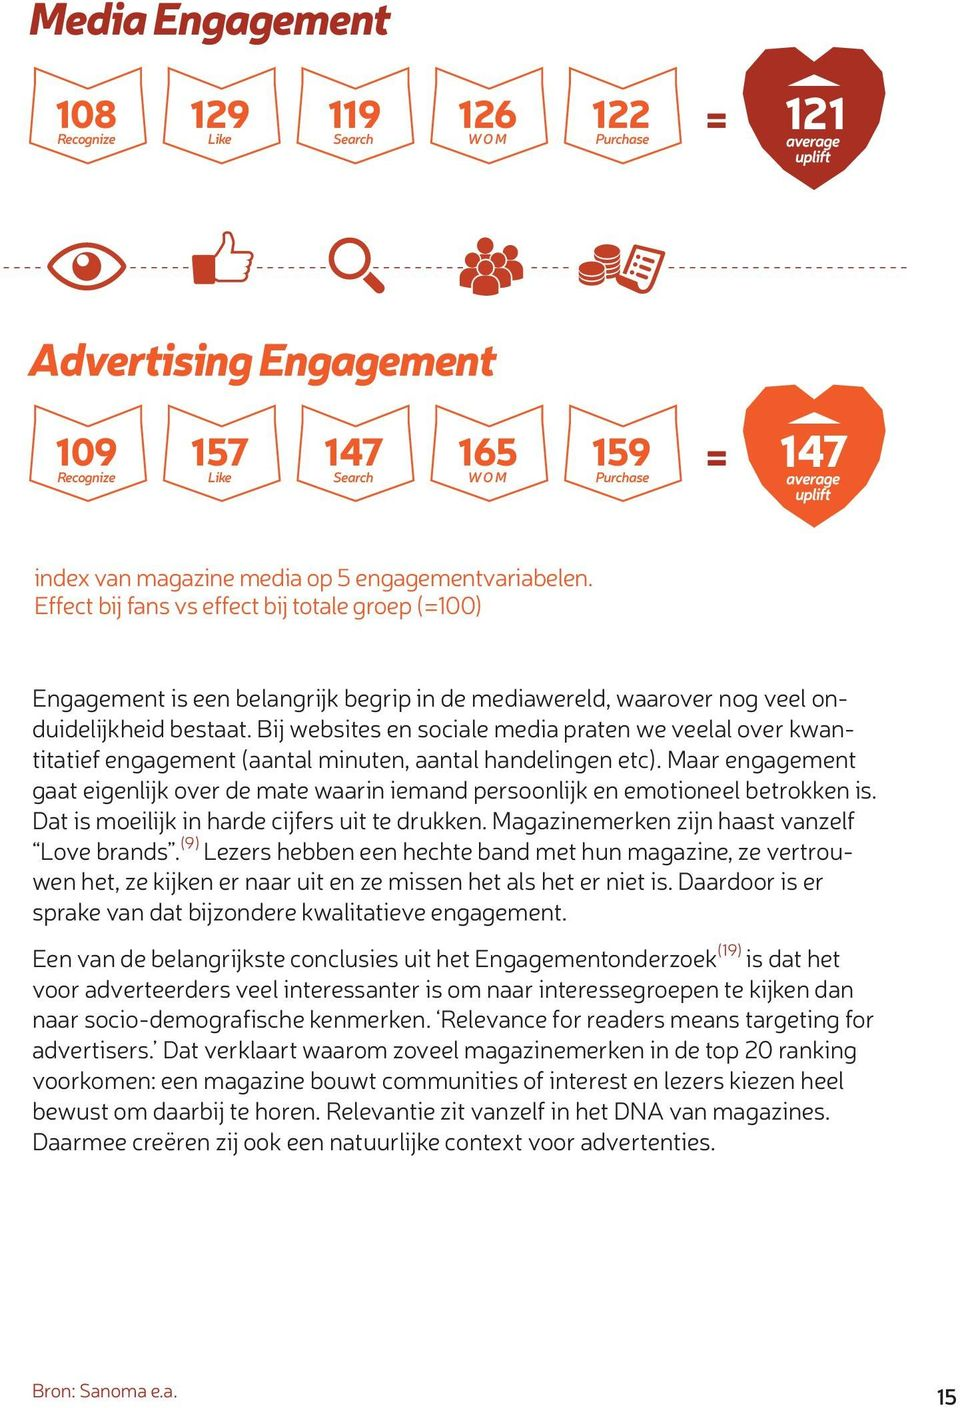 Bij websites en sociale media praten we veelal over kwantitatief engagement (aantal minuten, aantal handelingen etc).